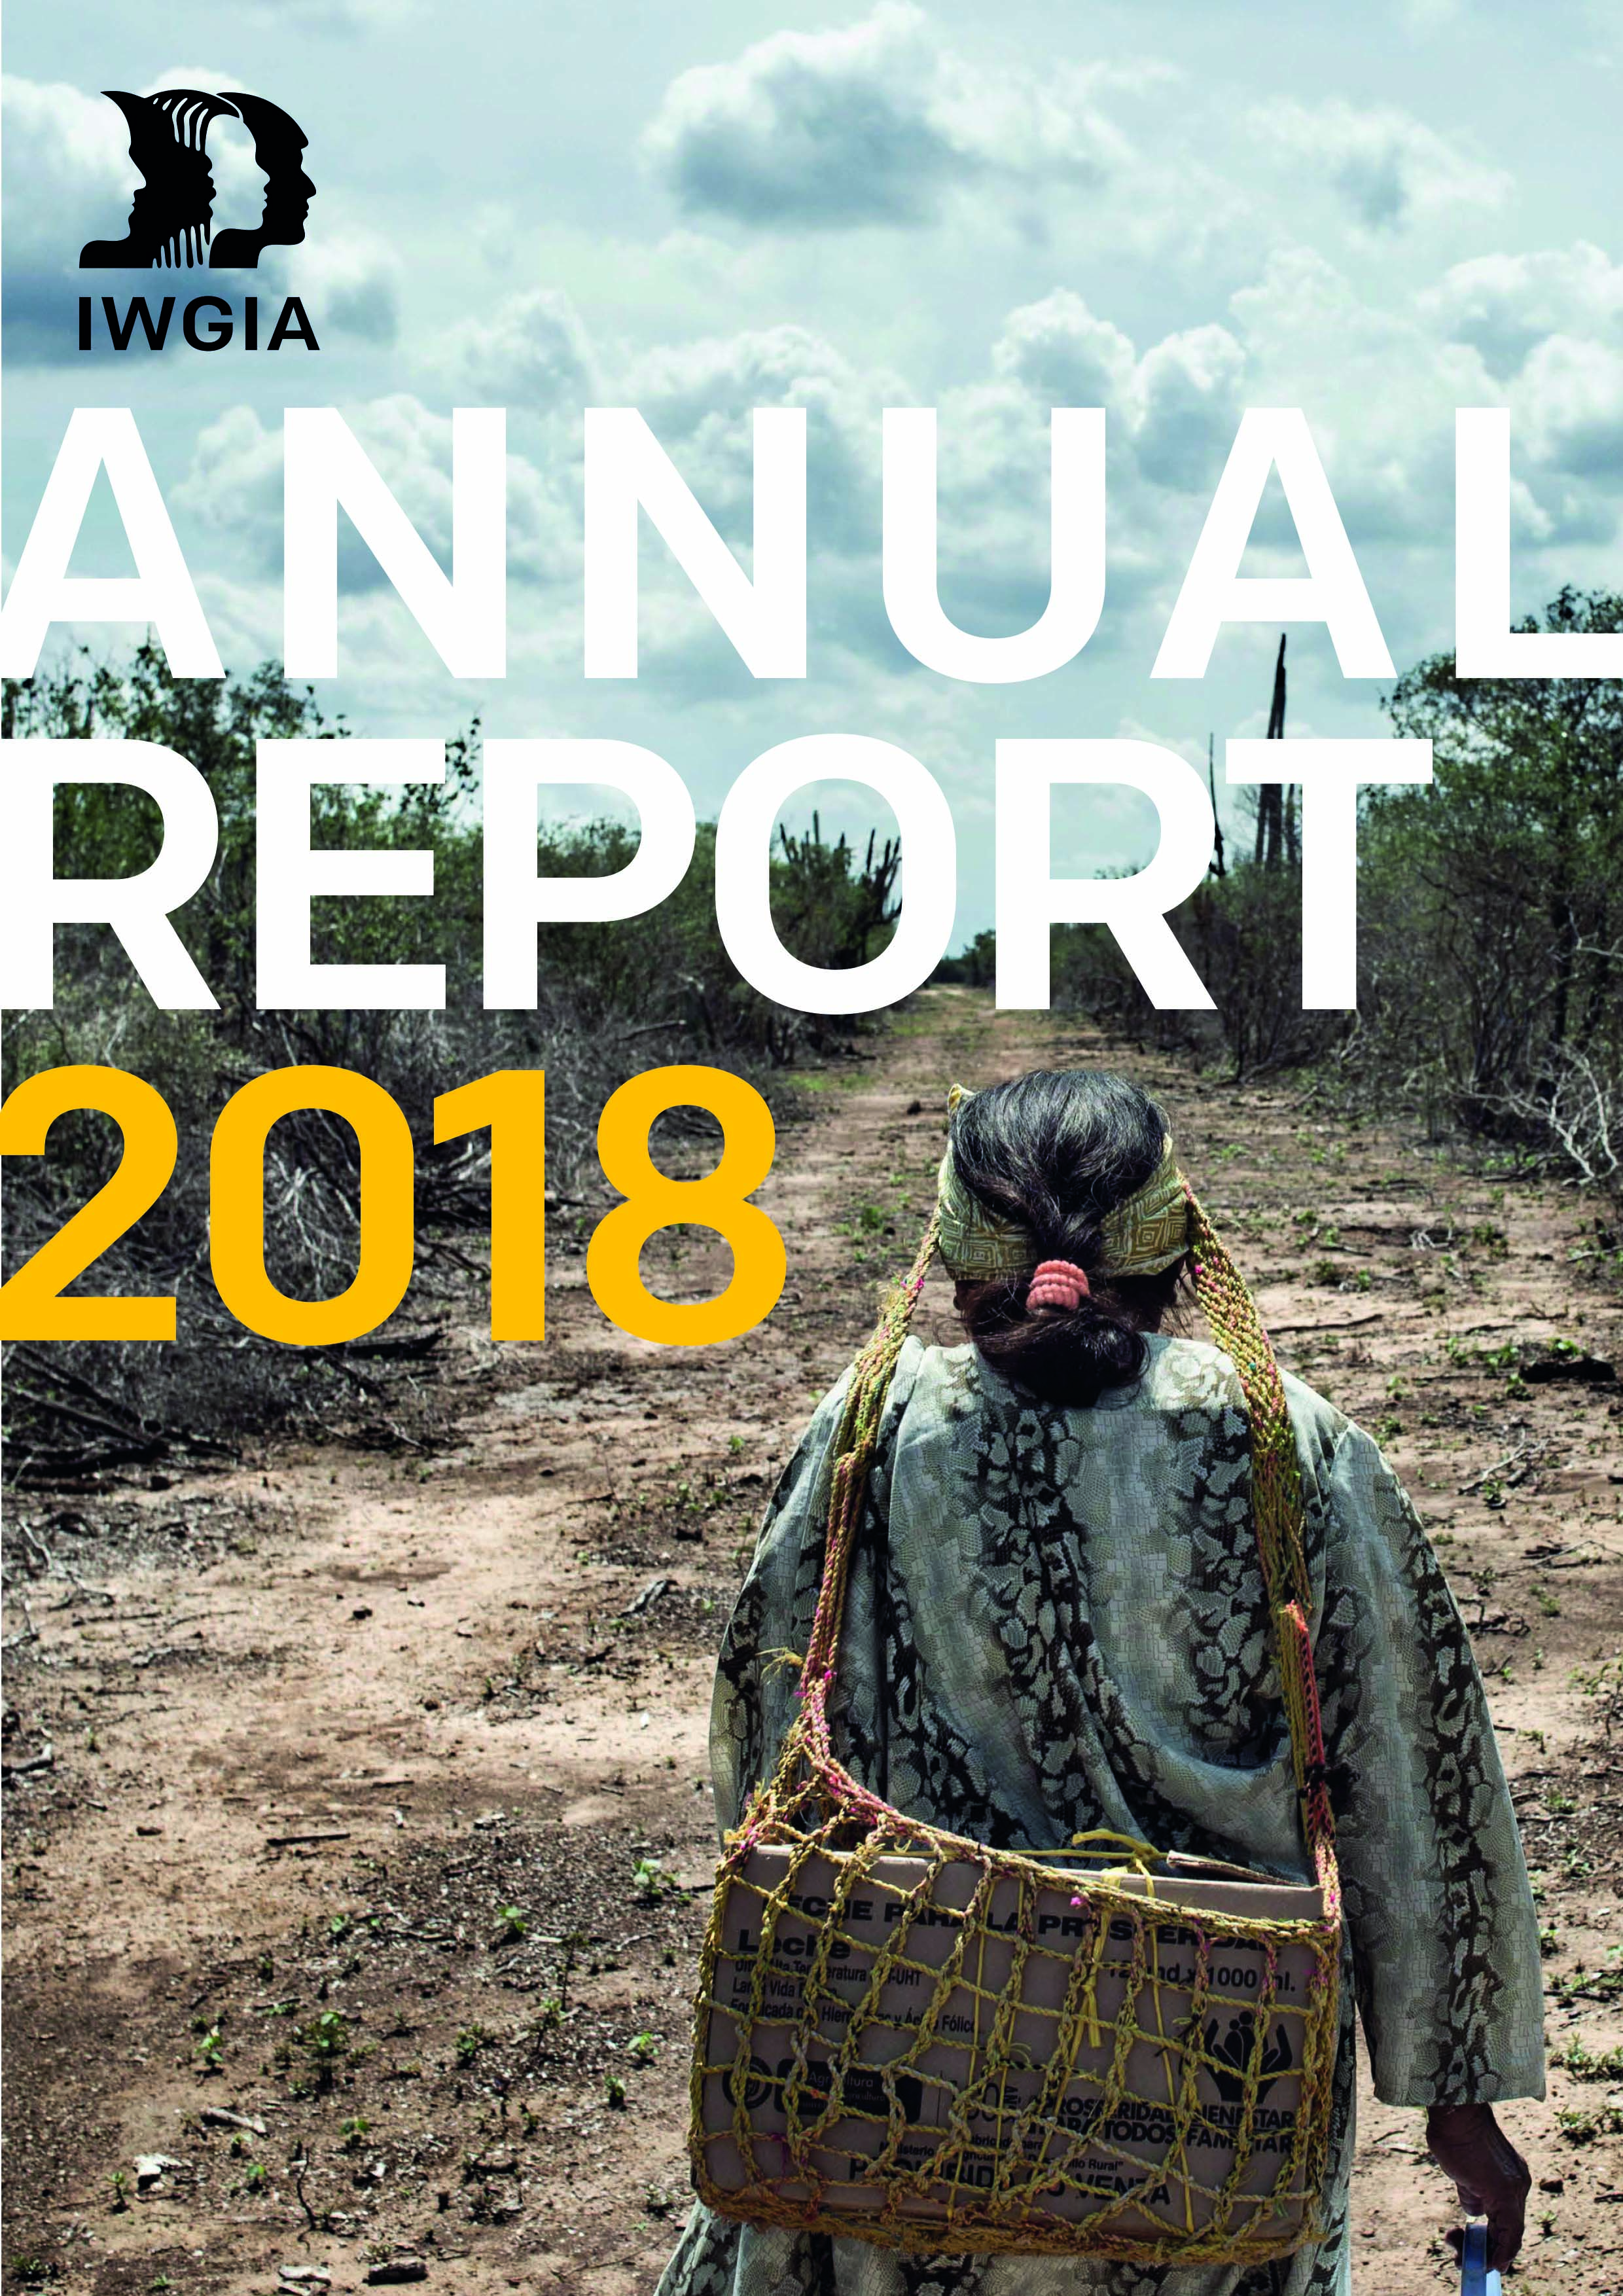 This annual report presents some of the many significant achievements IWGIA supported in 2018 for indigenous peoples' rights.